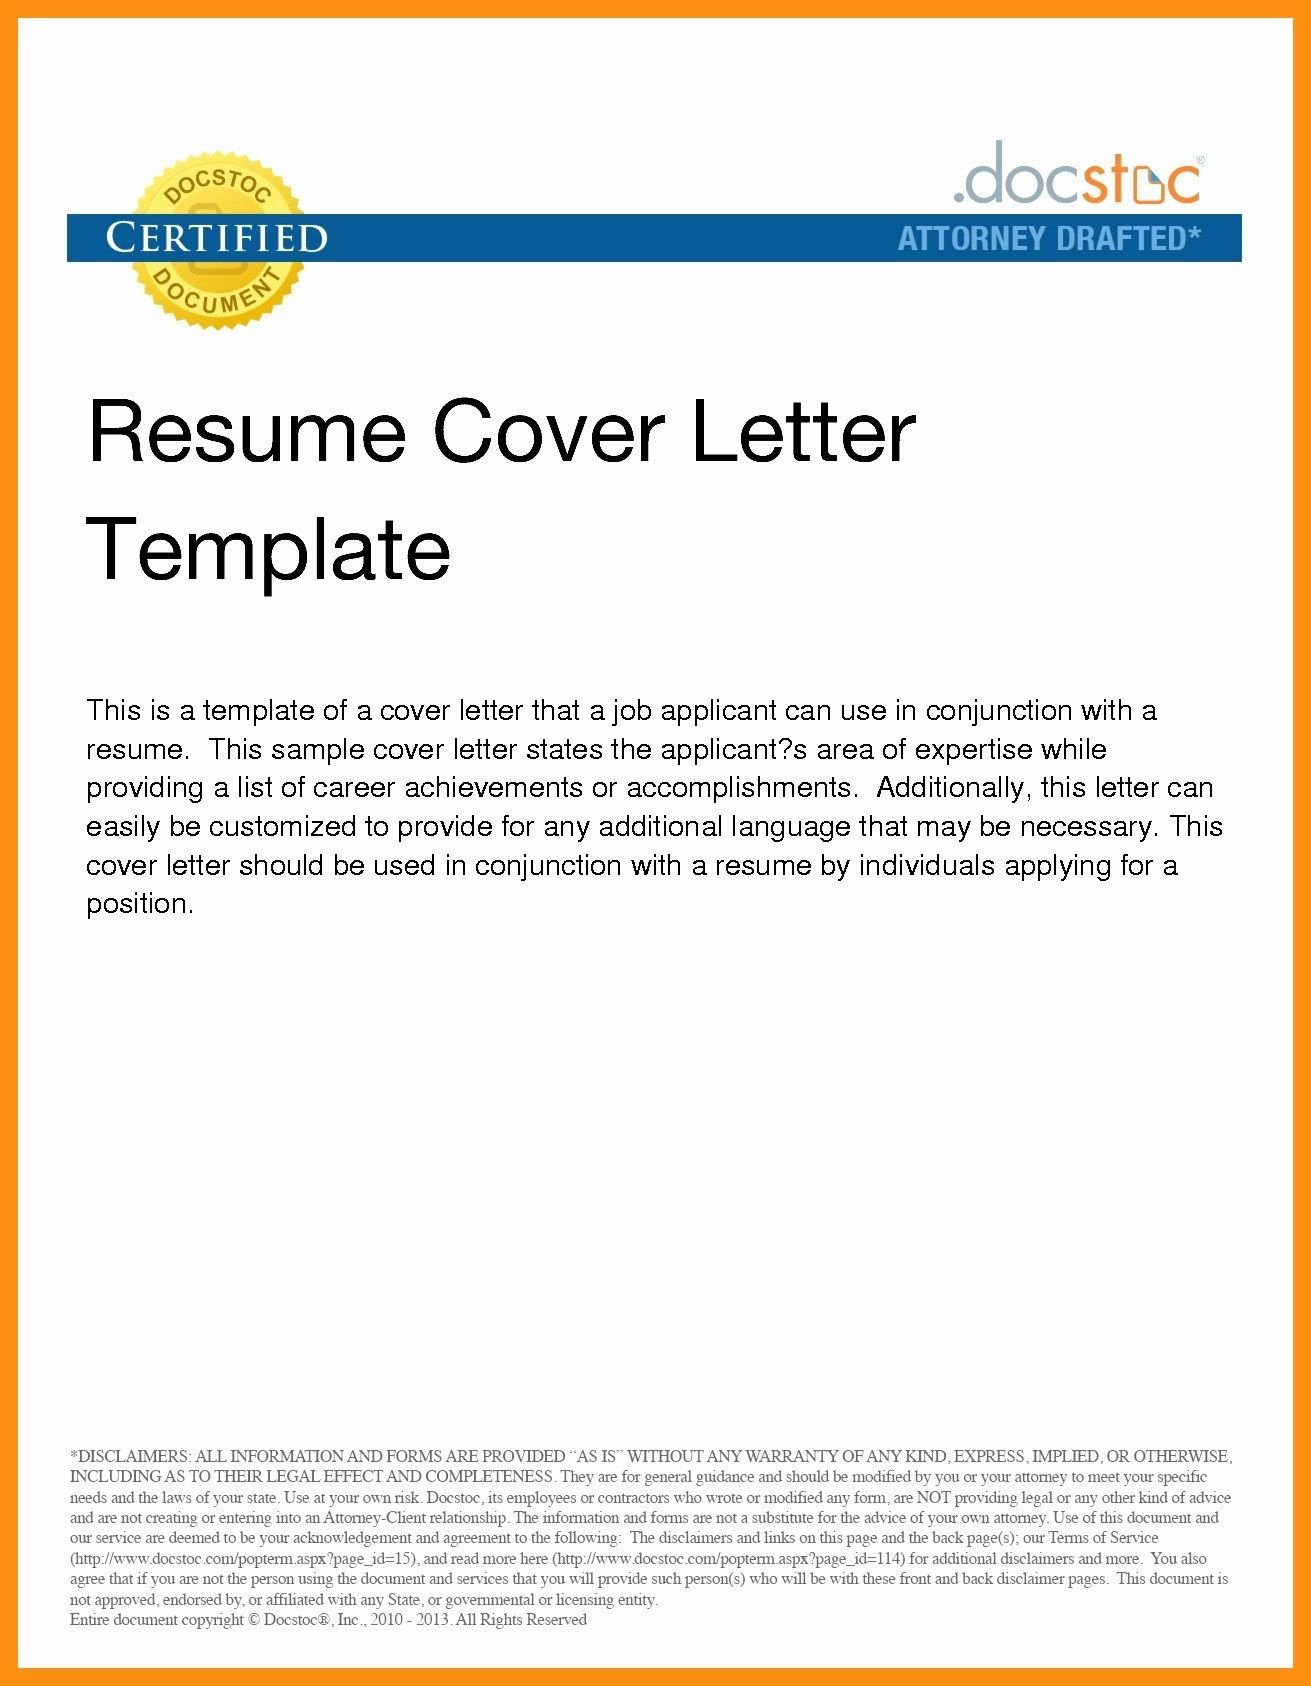 email resume cover letter samples addictionary sending with and fascinating design free Resume Sending Email With Resume And Cover Letter